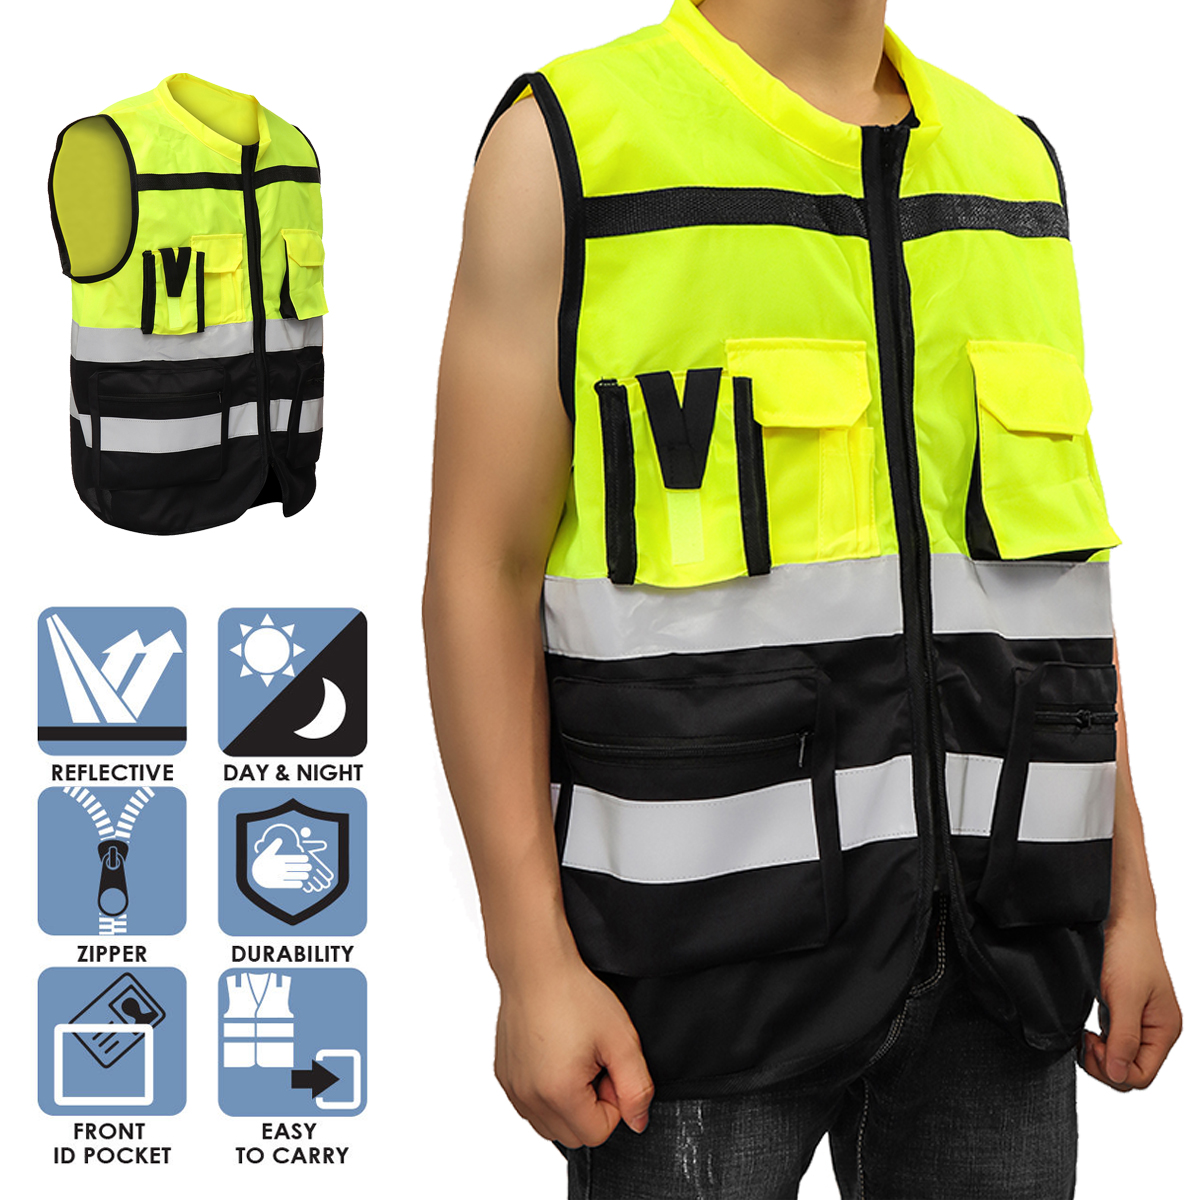 цена на Safurance S/M/L High Visibility Hi-Vis Safety Vest Reflective Driving Jacket Night Security Waistcoat With Pockets For Work Run